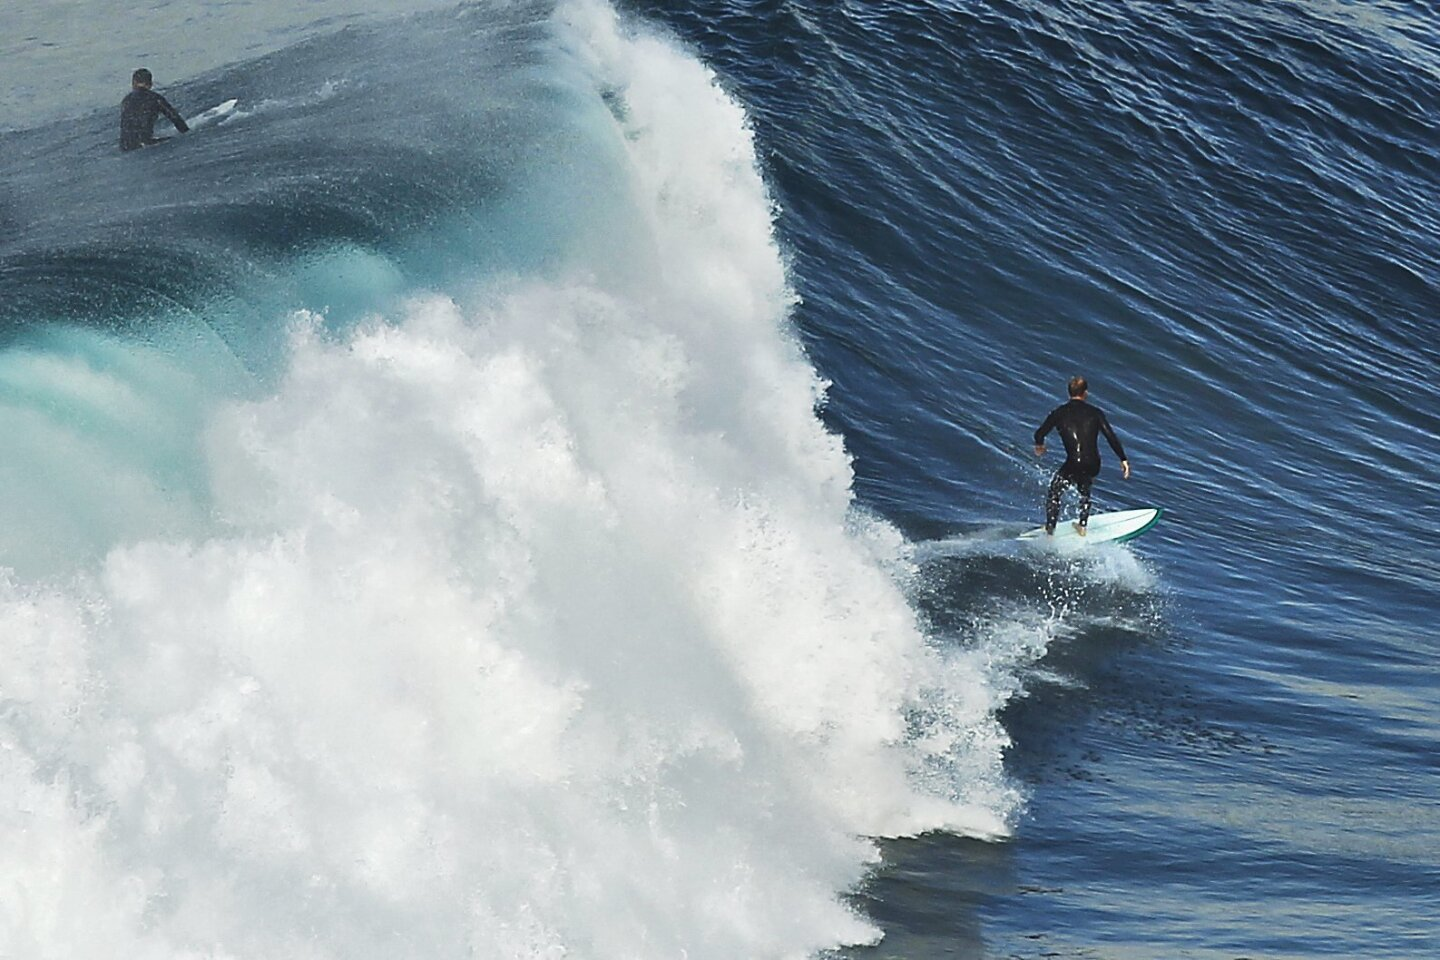 A surfer rides a wave at Black's Beach in La Jolla.